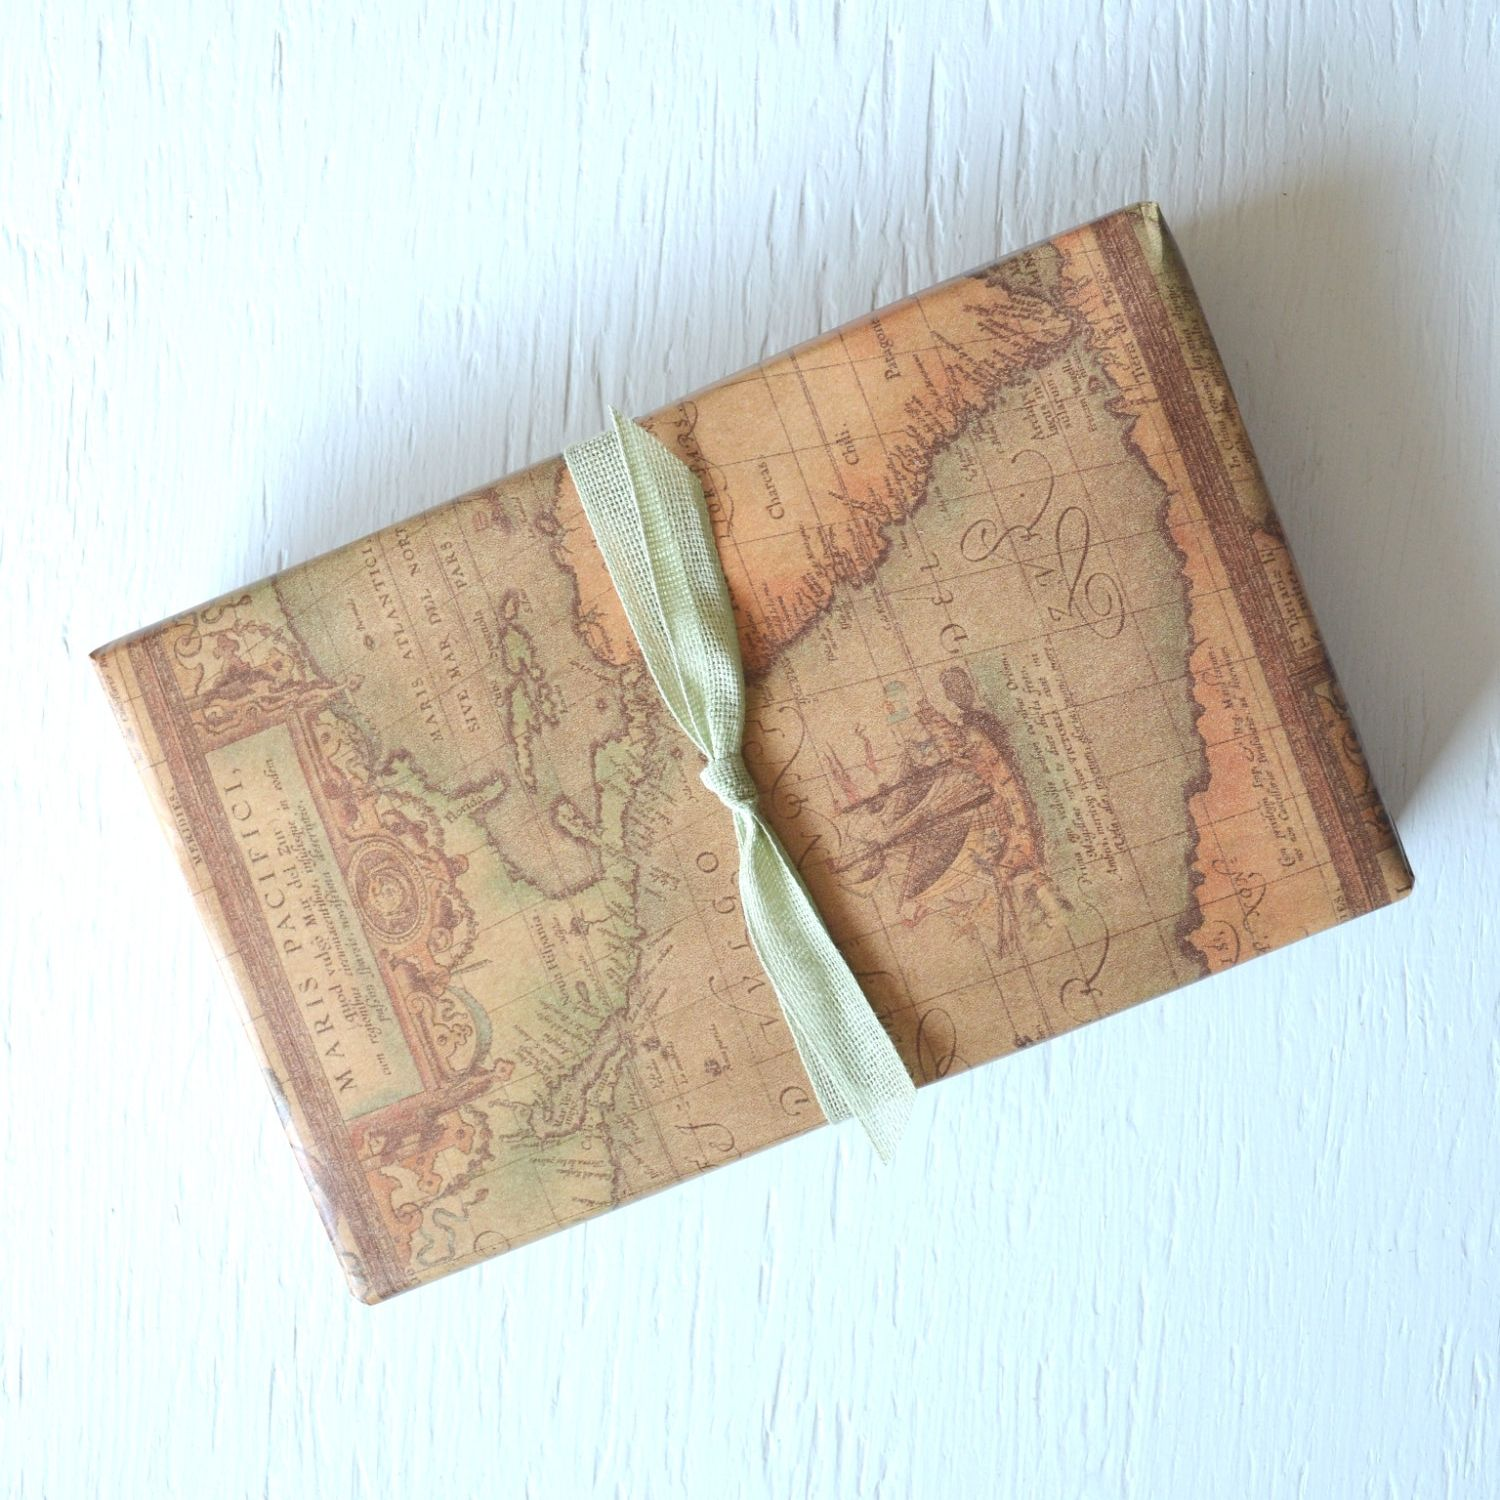 10 feet old world map kraft wrapping paper by wrapandrevel on etsy 10 feet old world map kraft wrapping paper by wrapandrevel on etsy 900 gumiabroncs Choice Image